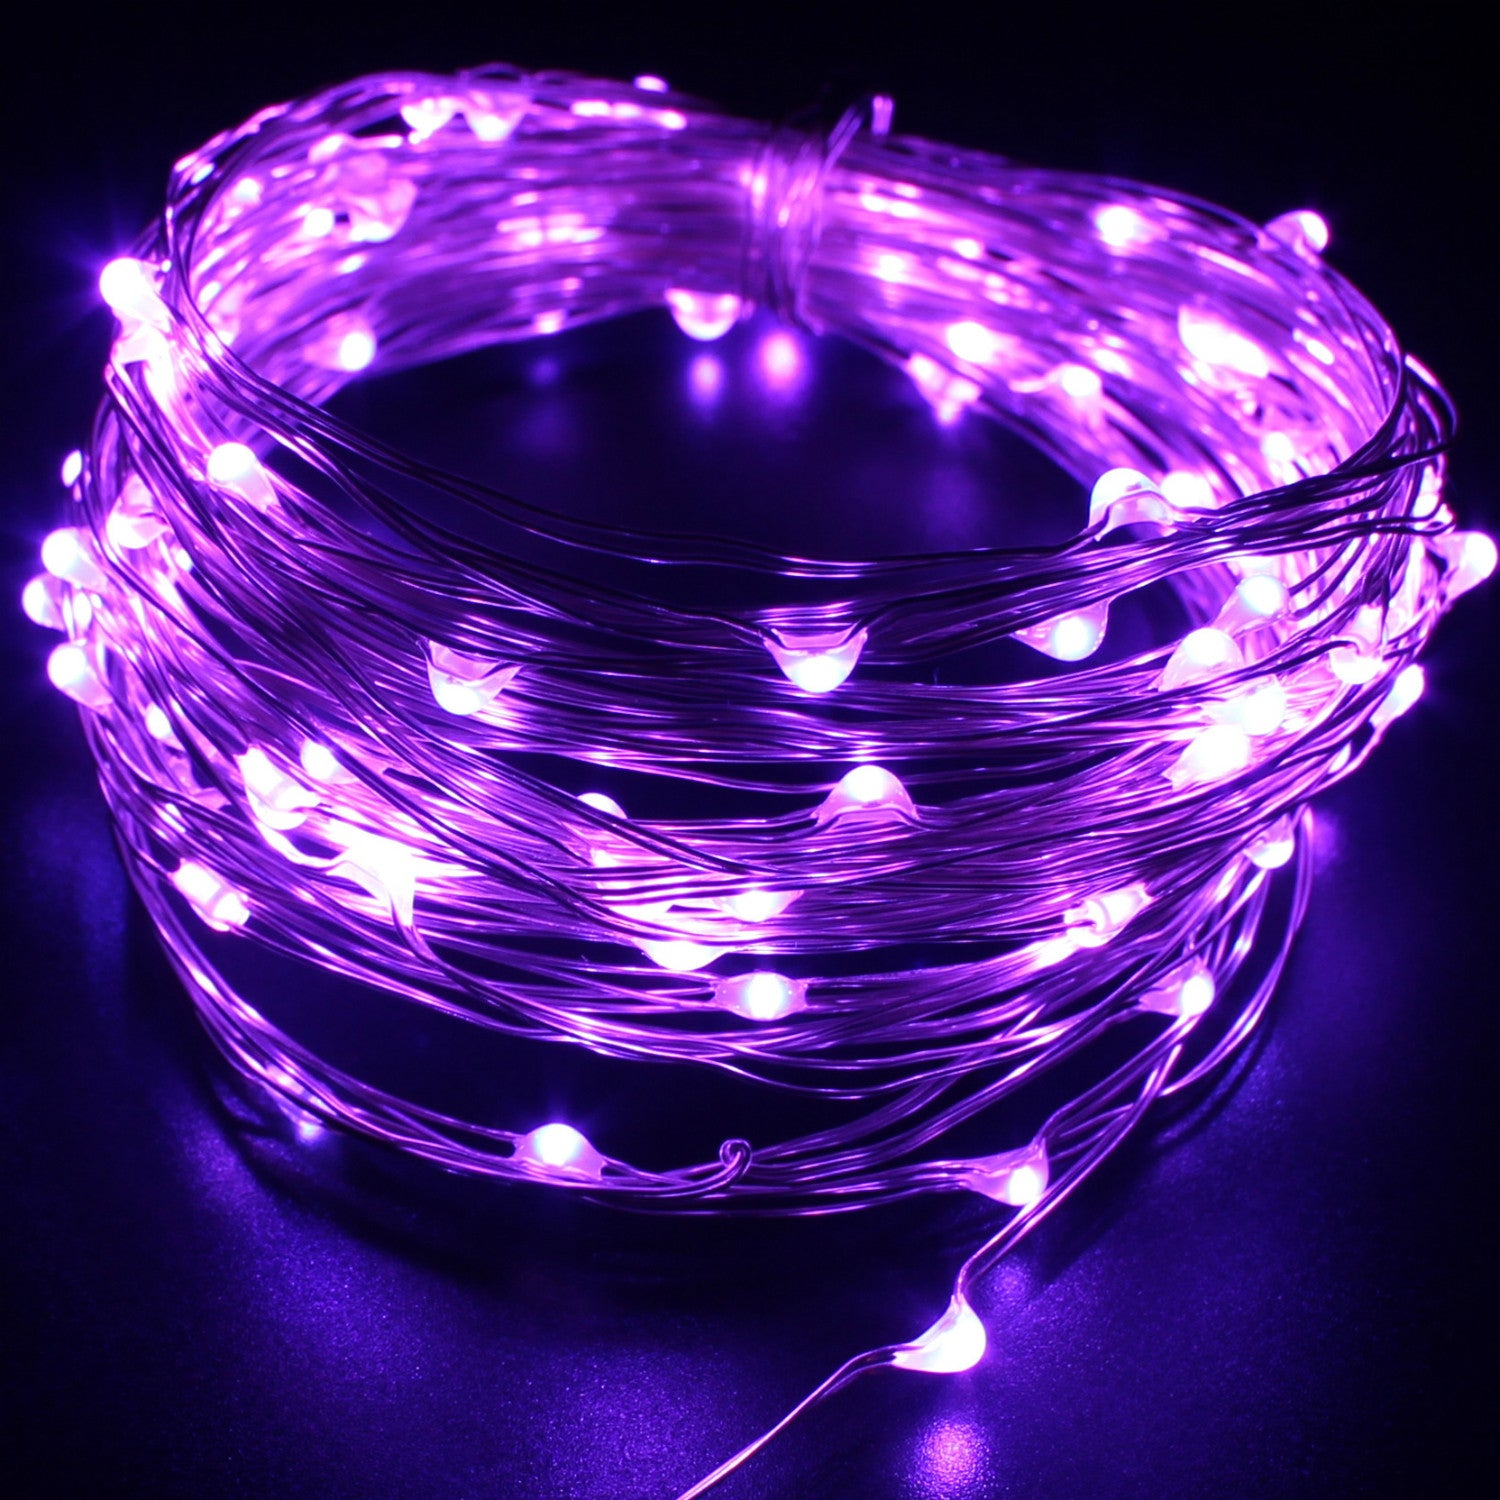 Purple String LED Lights   Indoor/Outdoor, Waterproof, Flexible Copper Wire  With USB